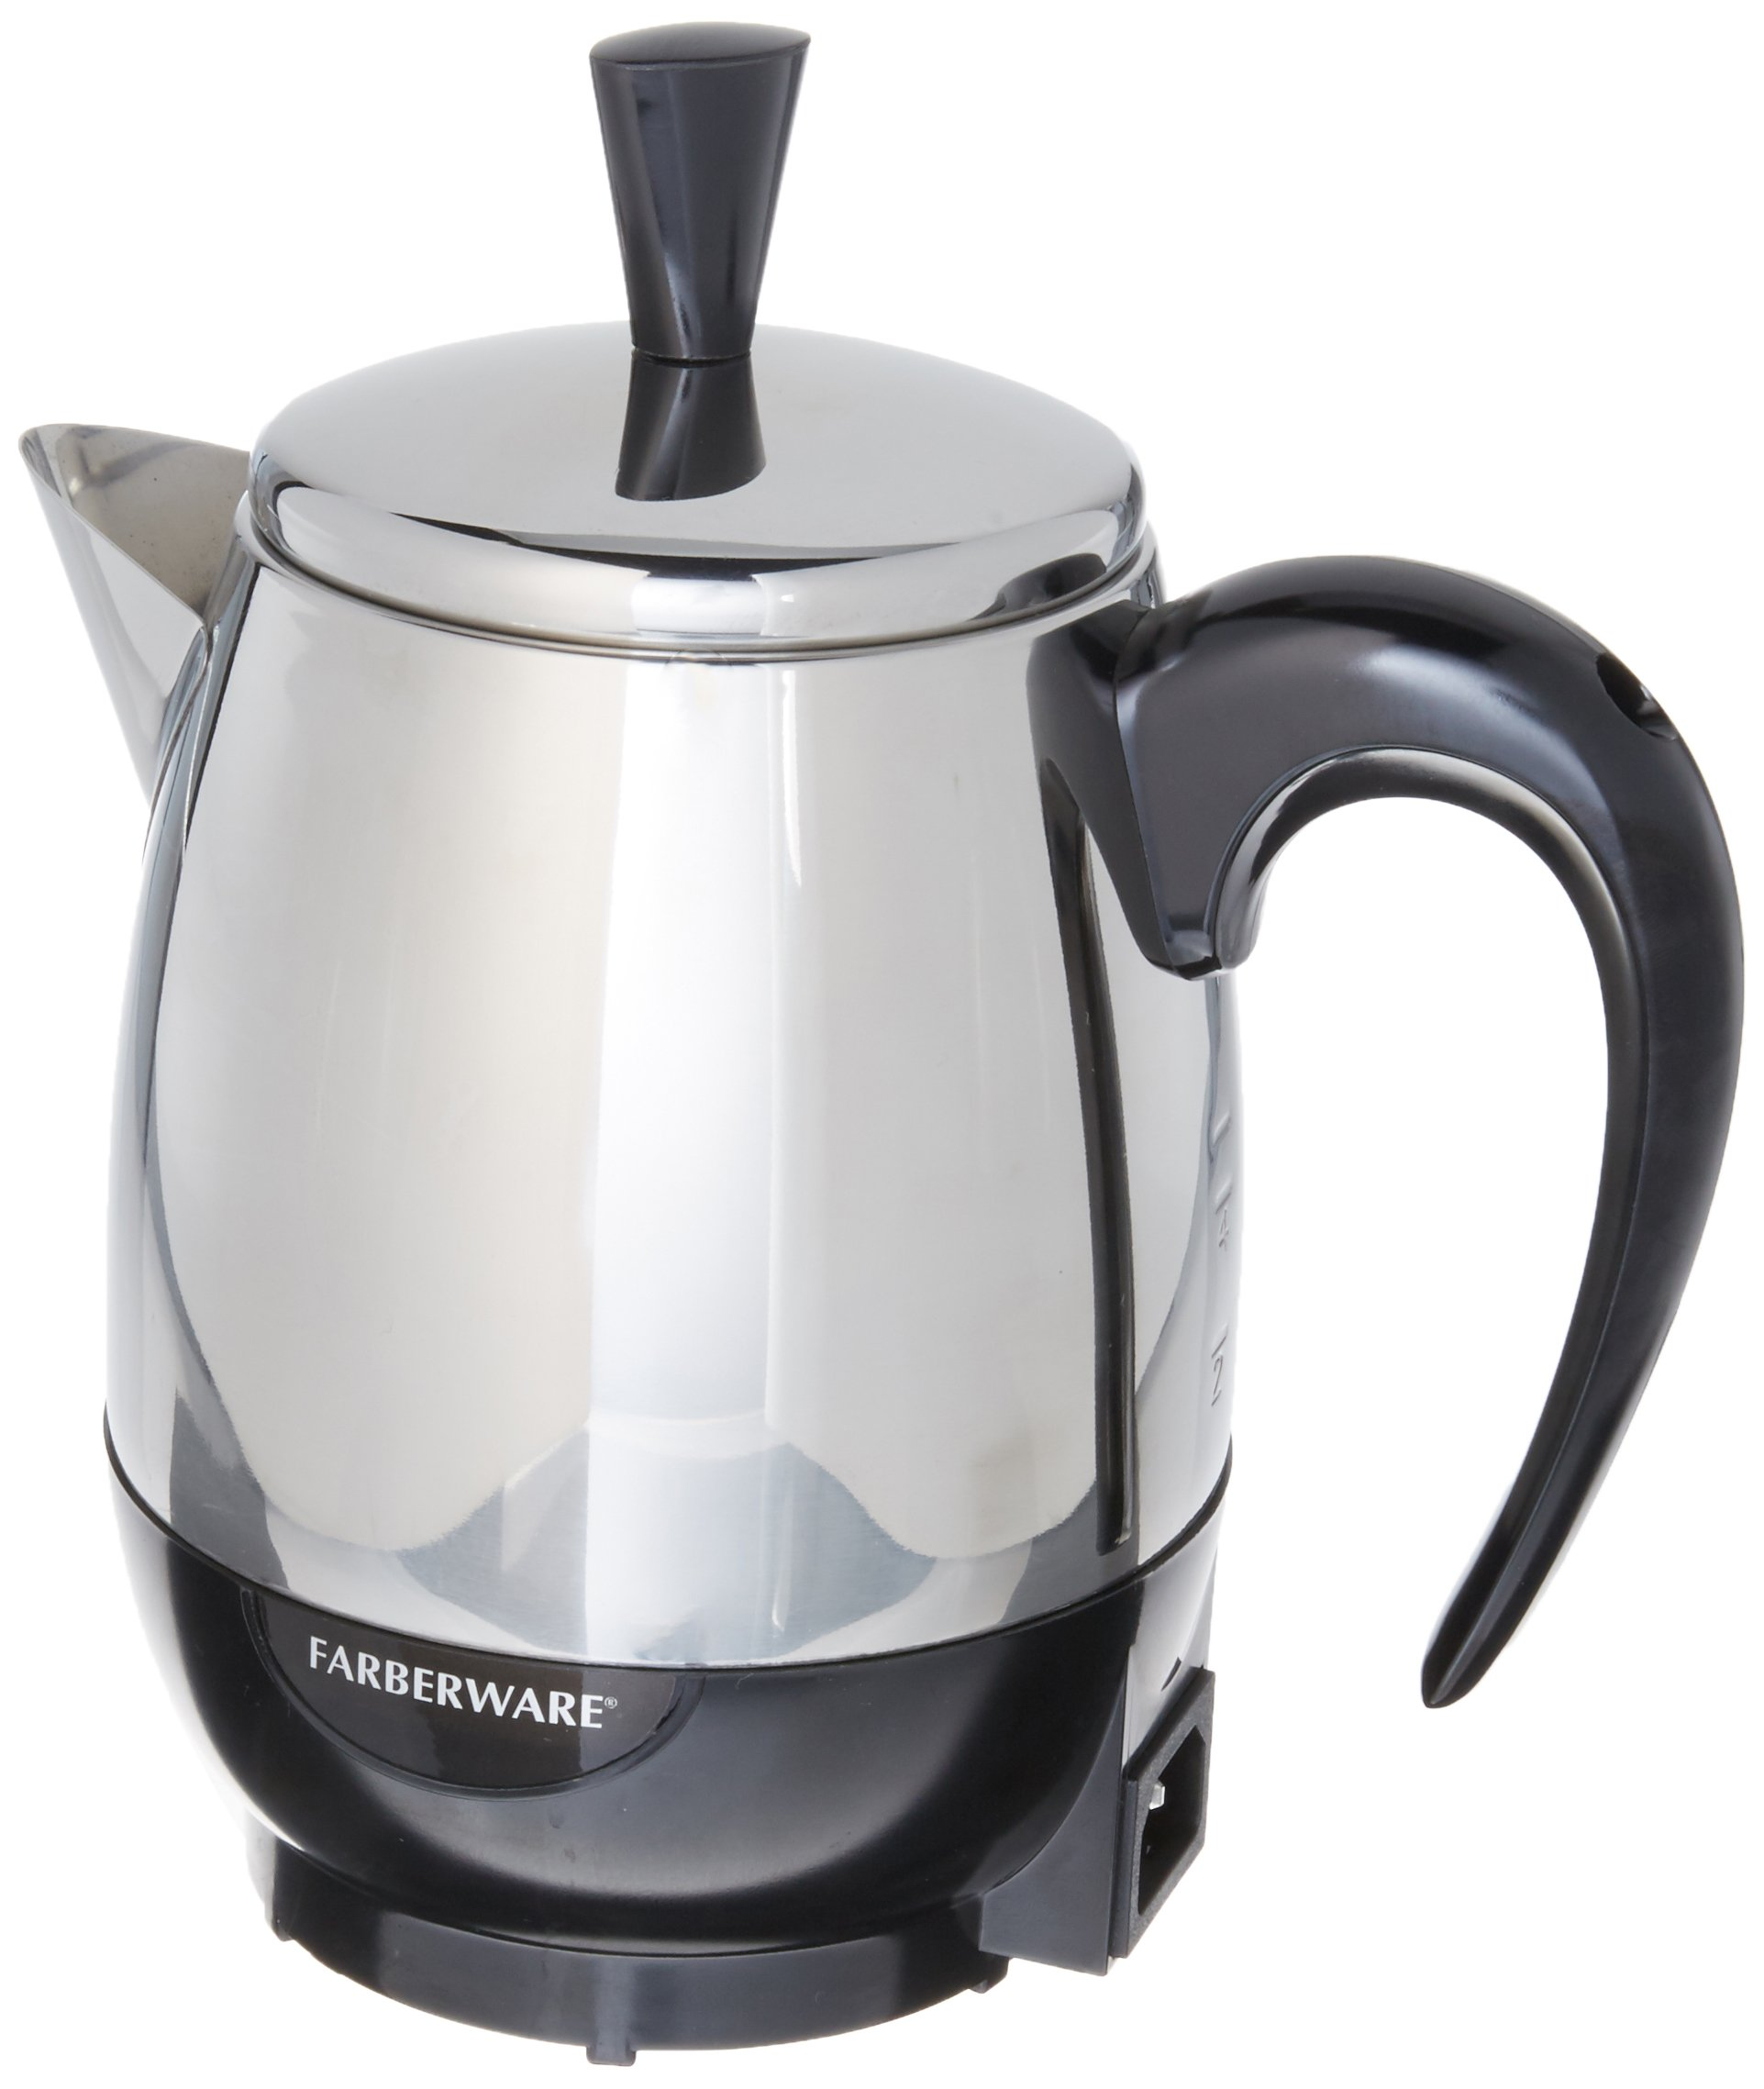 Farberware Percolator 4 Cup Stainless Steel 1000 W by Farberware